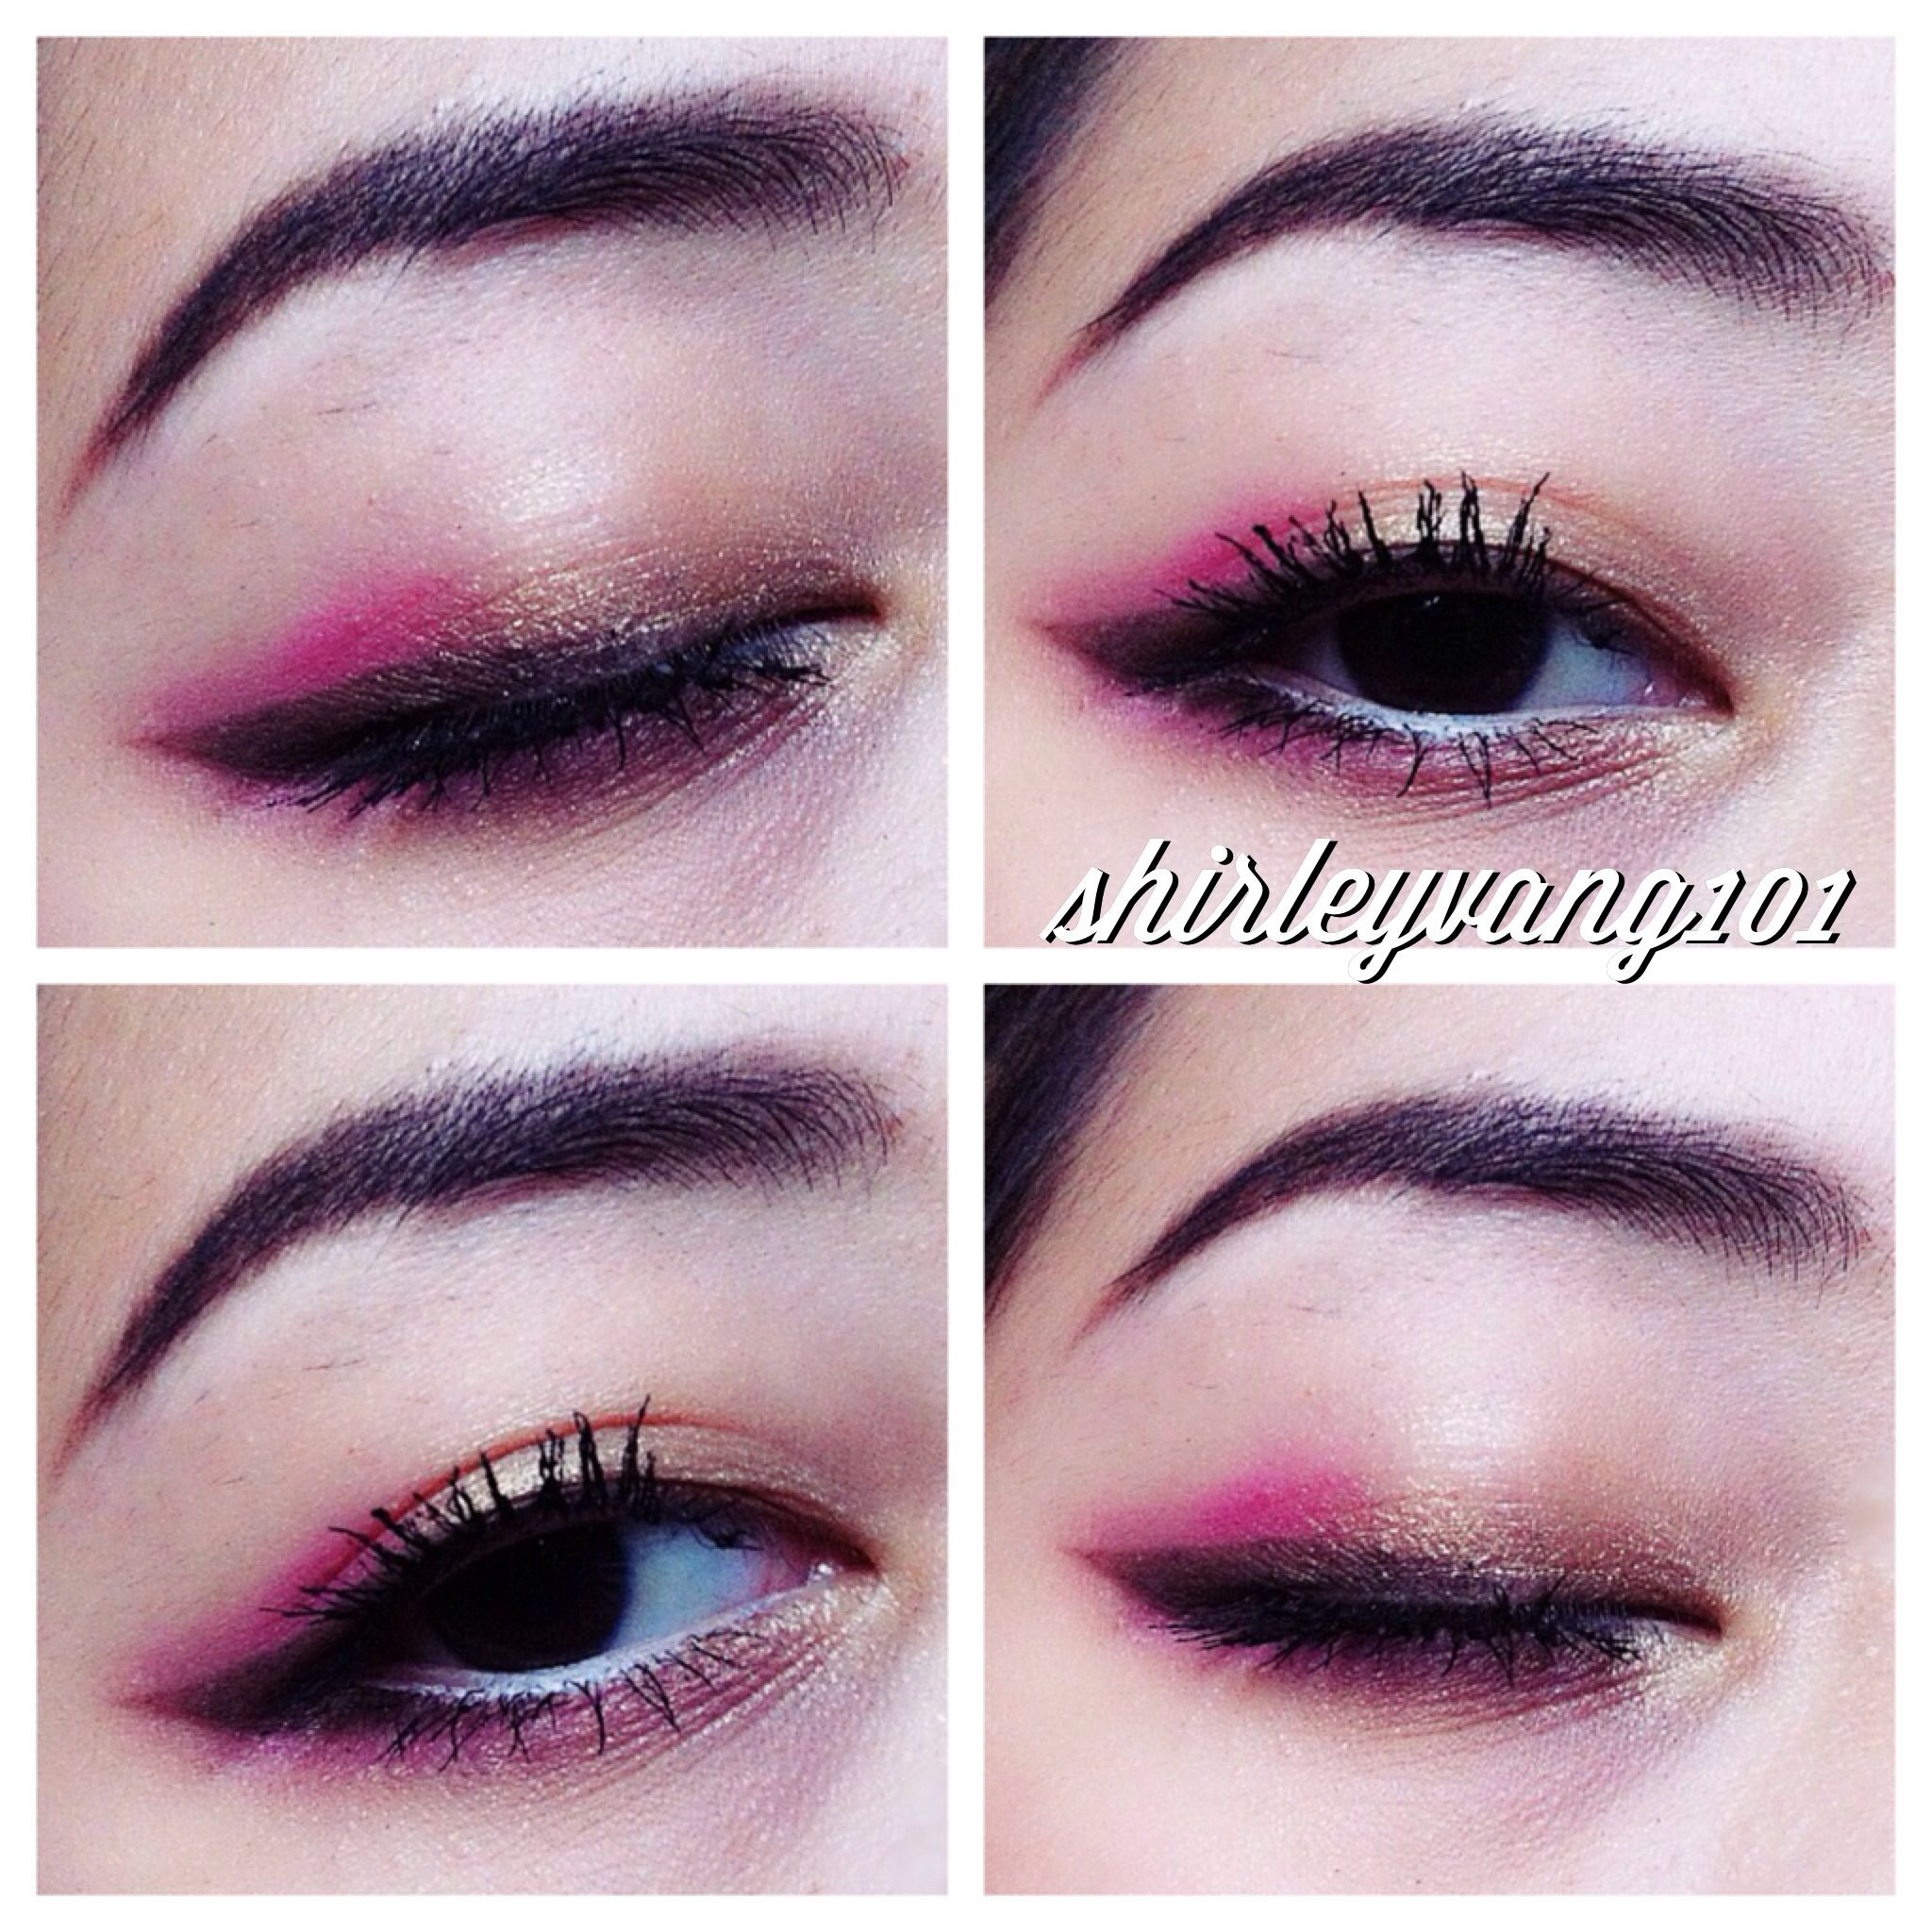 Pin on Makeup lovers